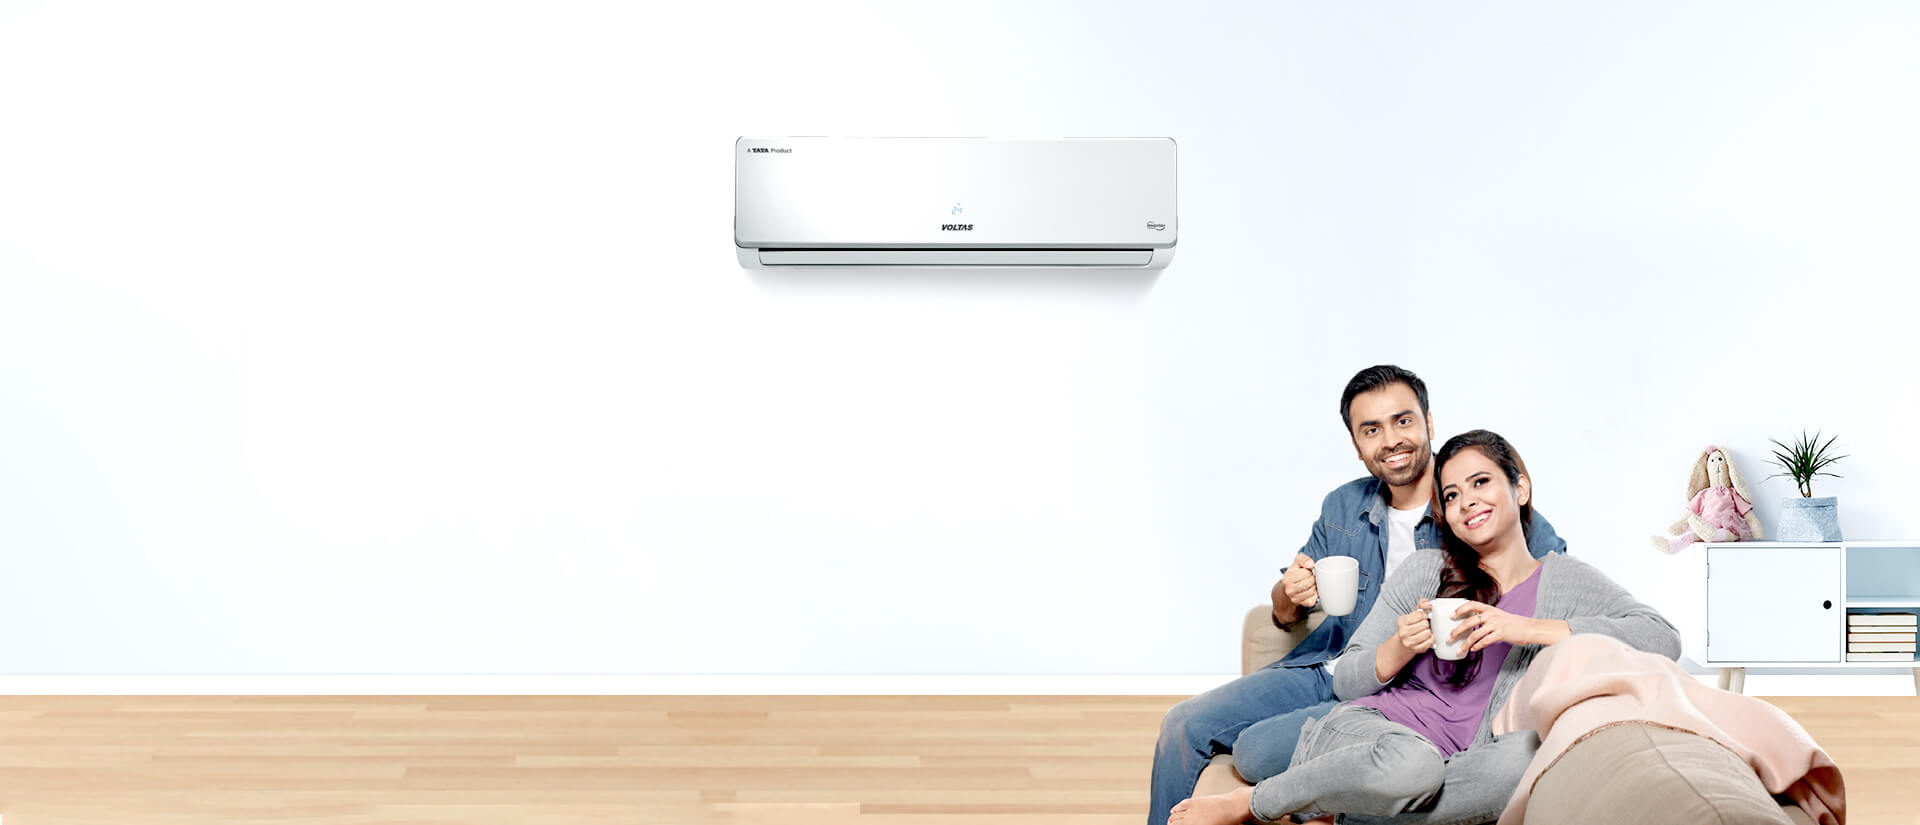 Adjustable Inverter AC